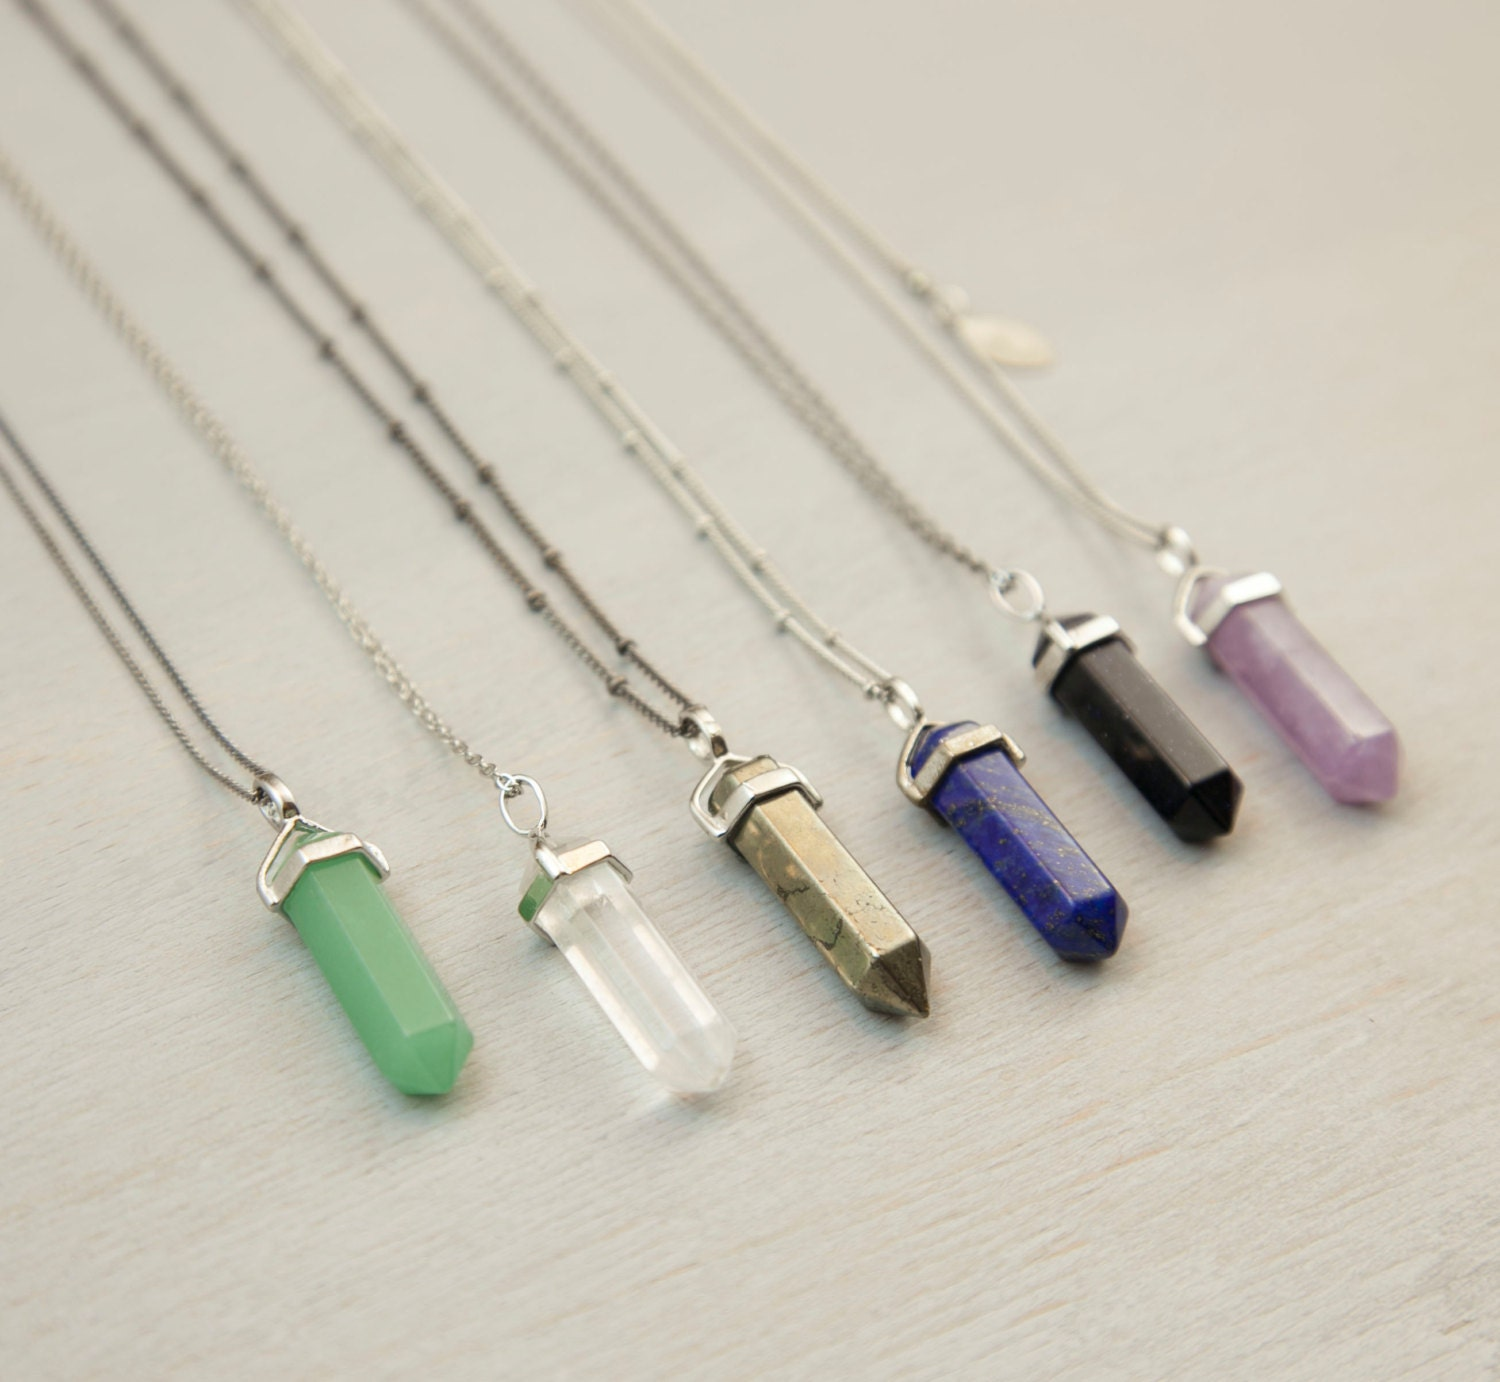 pendant fluorescent markt products pendants amboo hexagonal crystal natural store grande necklaces necklace